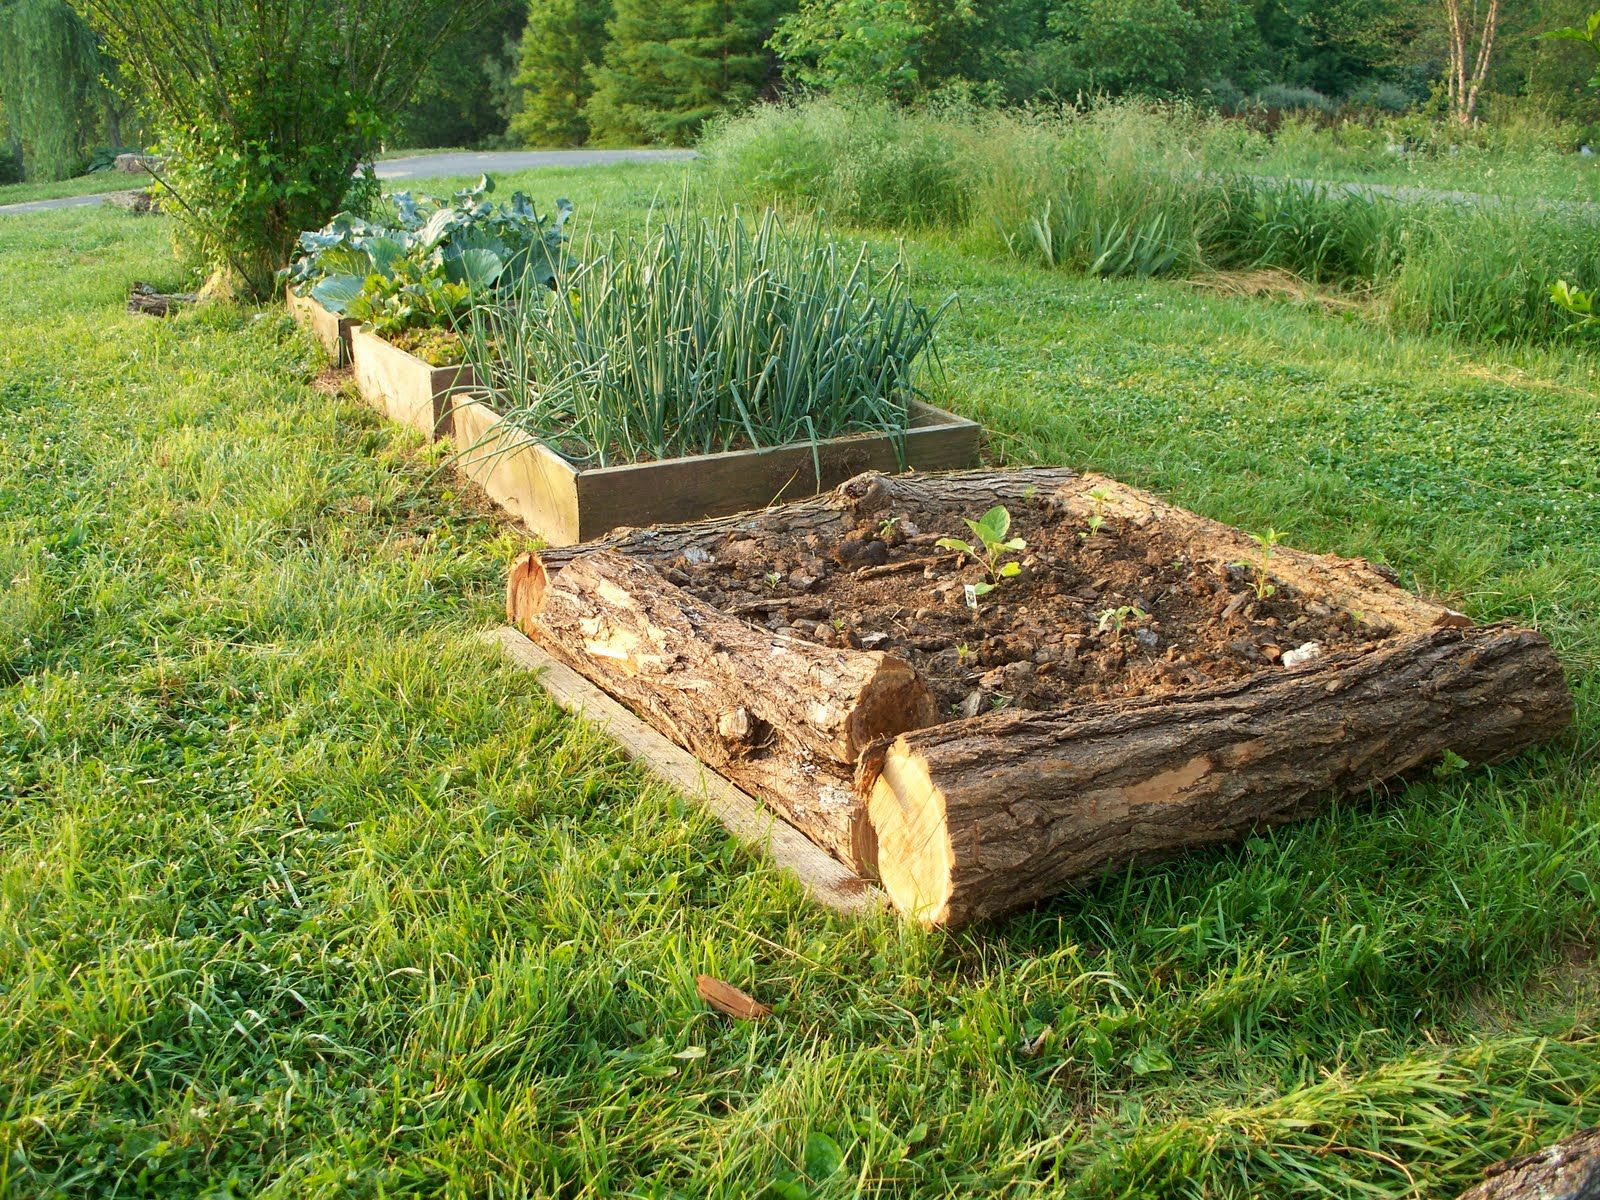 Rough hewn logs provide walls for a raised bed while blending in